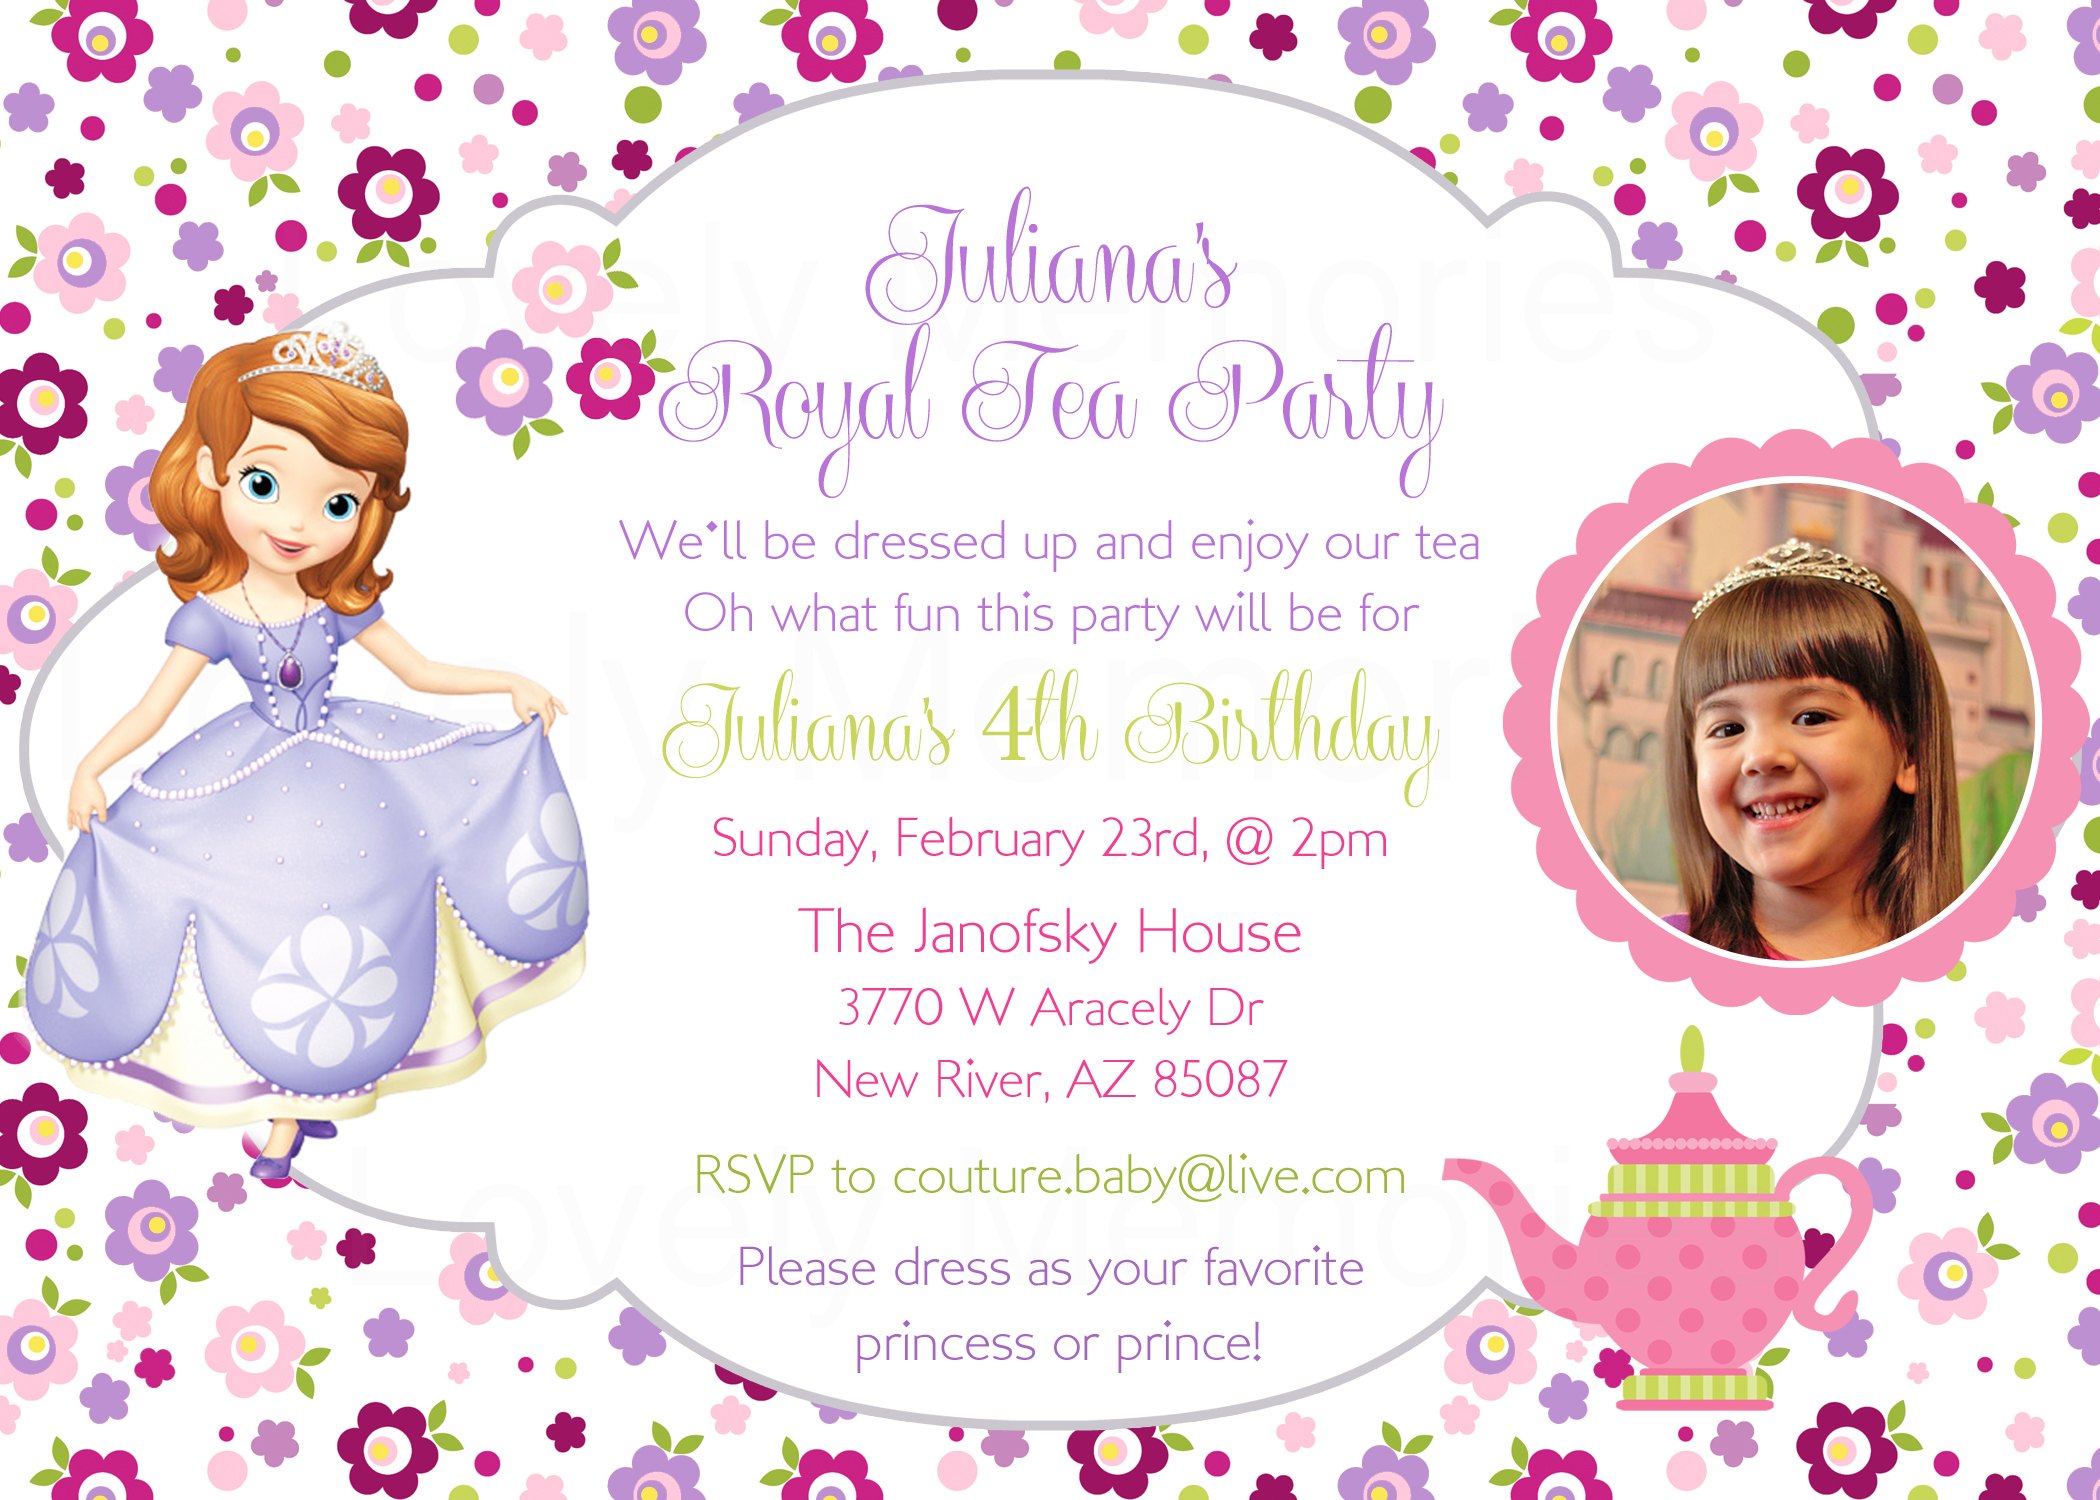 Sofia the first - Princess Birthday tea by thelovelymemories on Zibbet